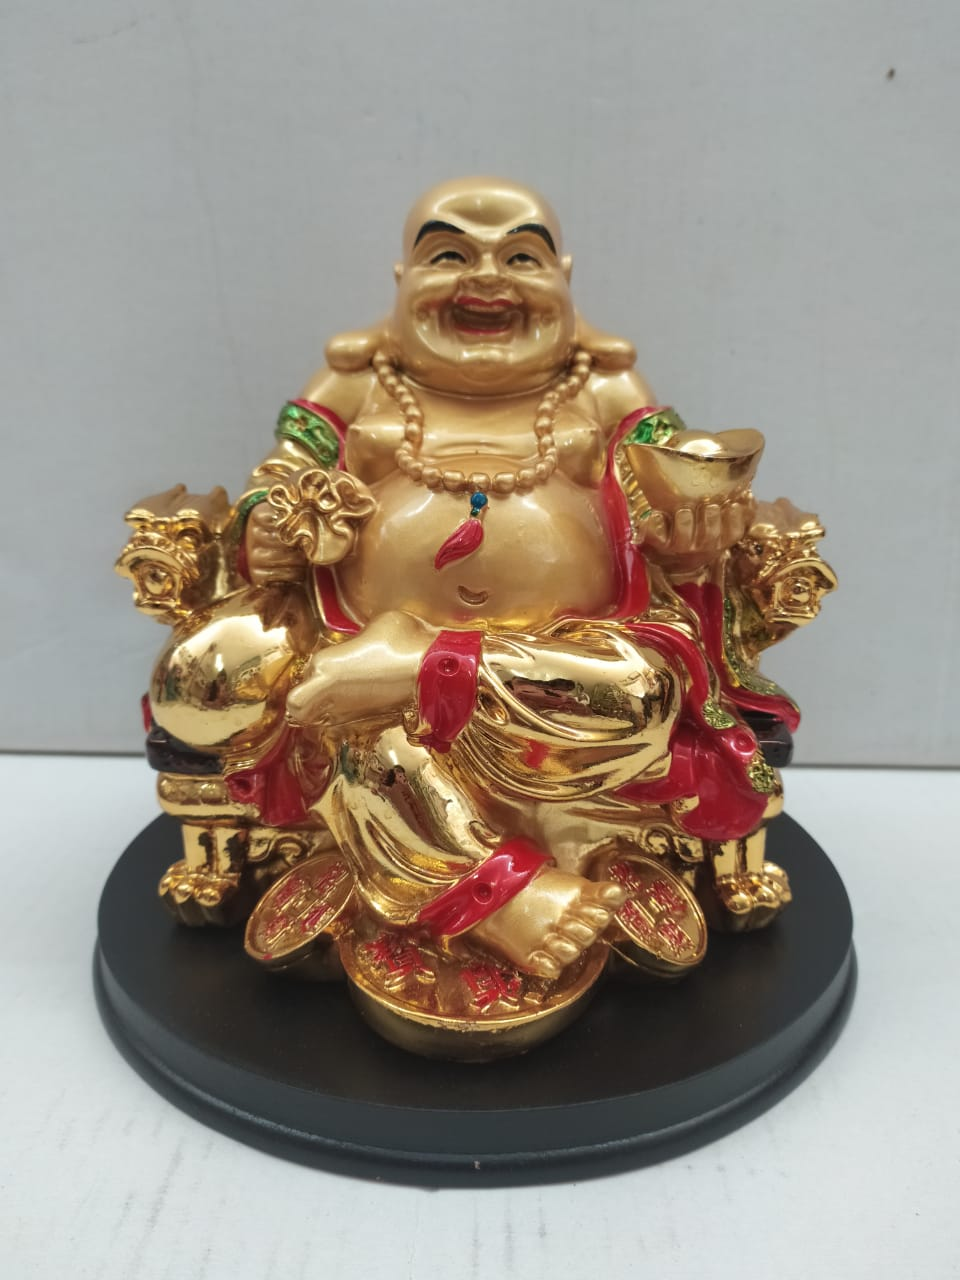 Buy Gold Colour Laughing Budha For Wealth And Good Luck (CT123)Online